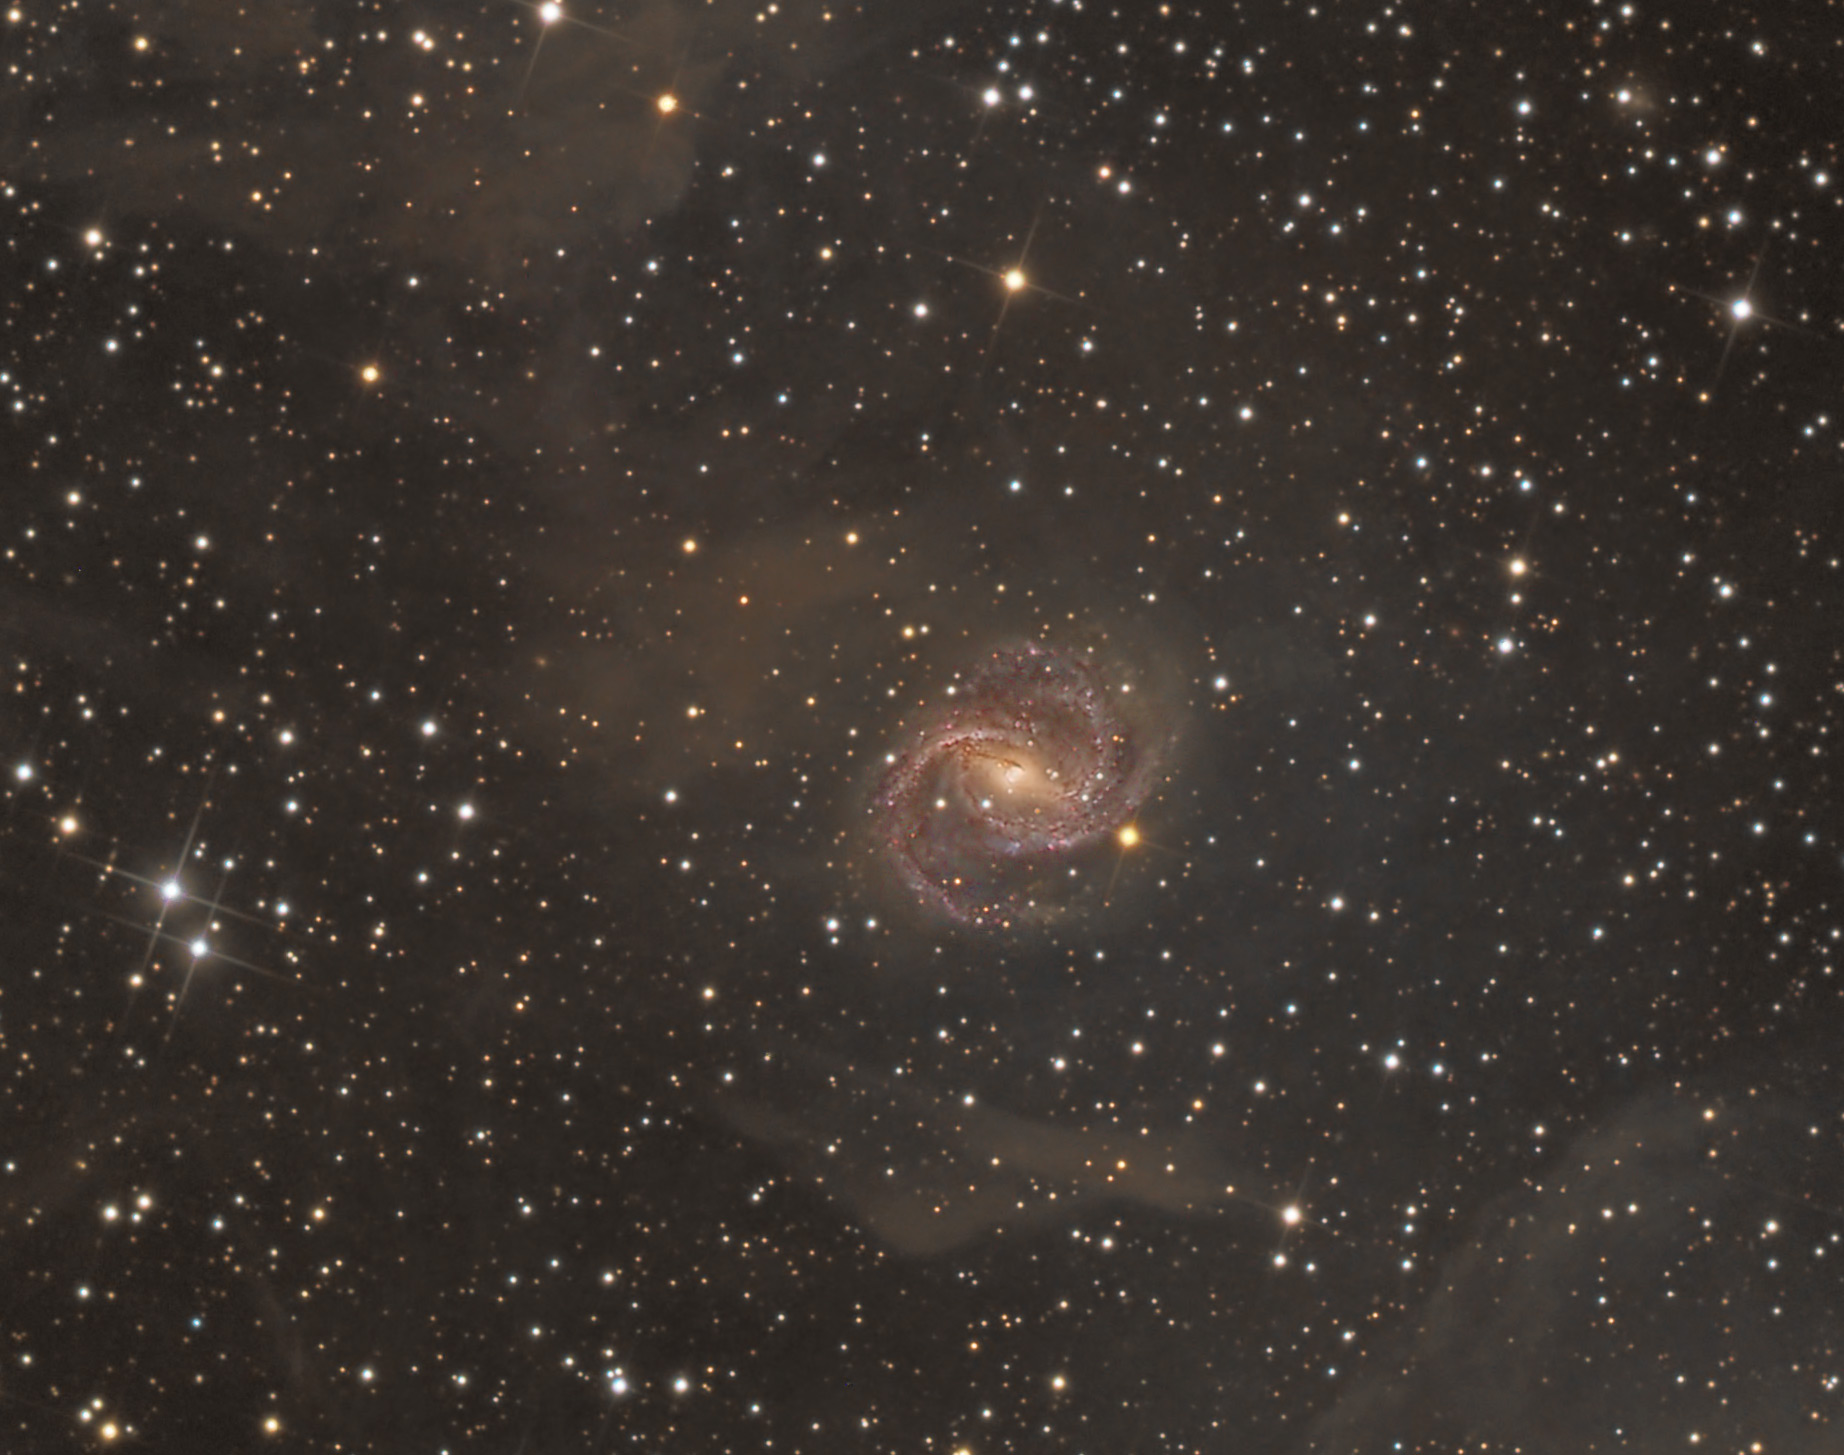 Spiral Galaxy Shakes Off Cosmic Dust in Photo